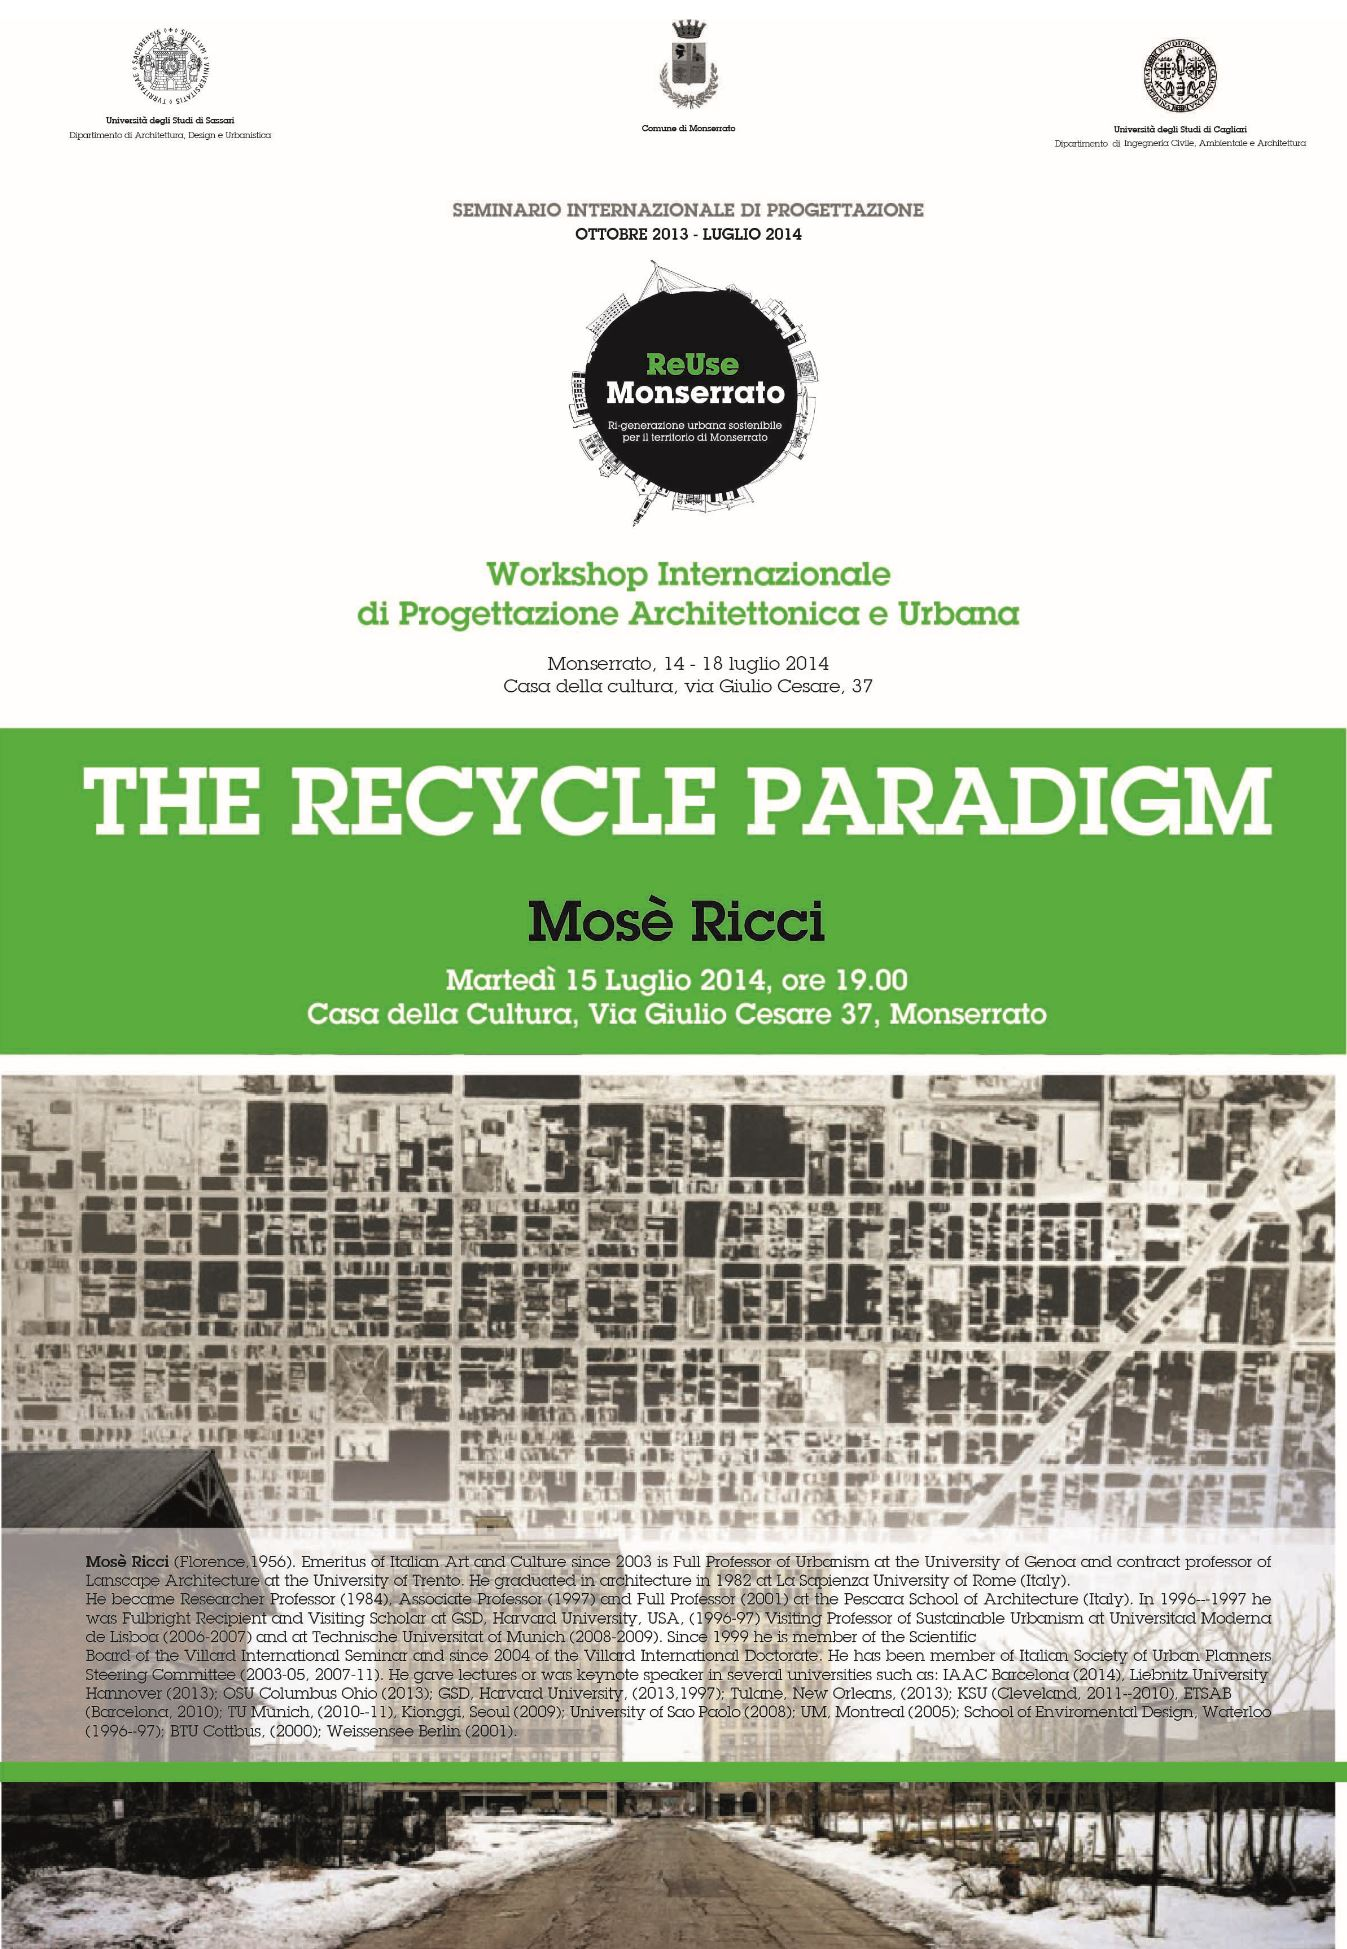 THE RECYCLE PARADIGM